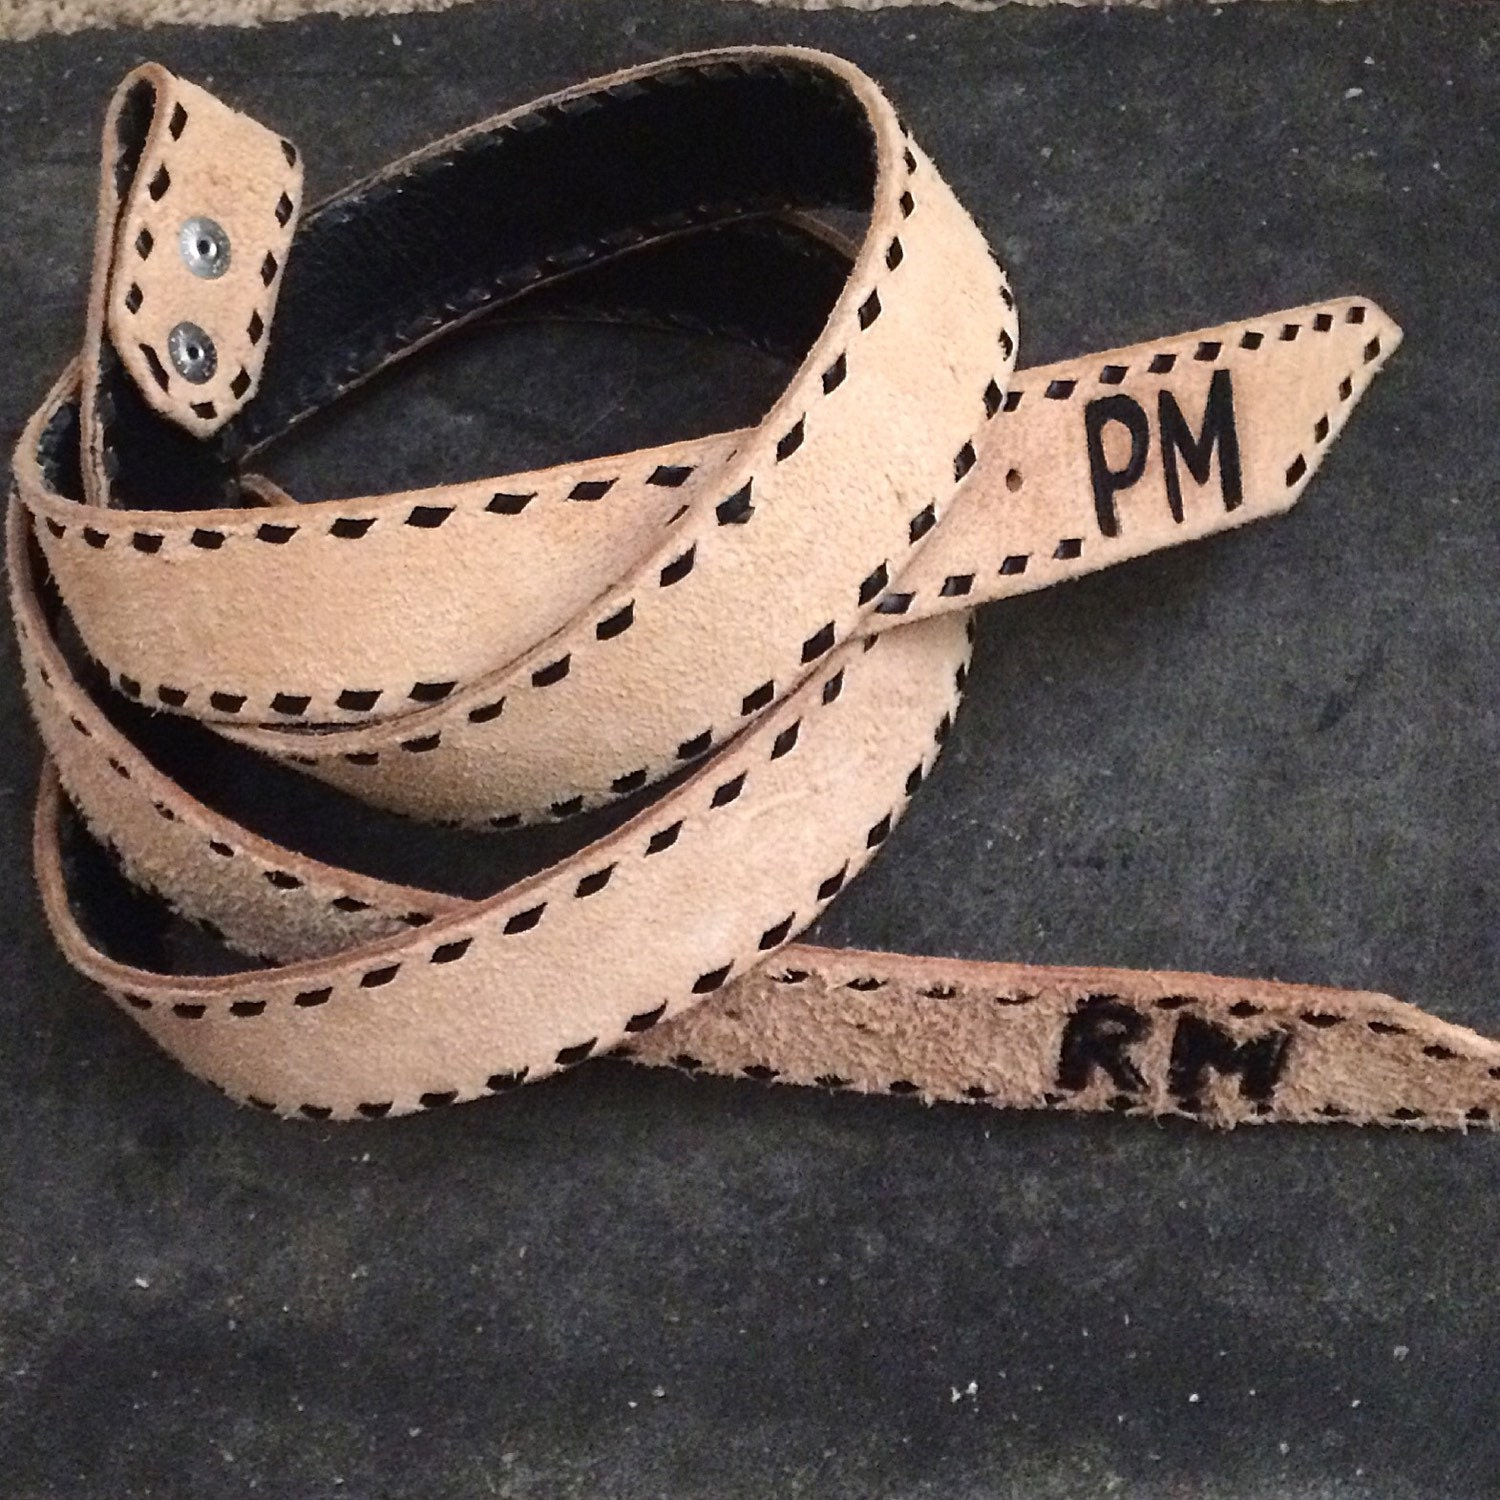 custom roughout leather belt with buckstitching and 2